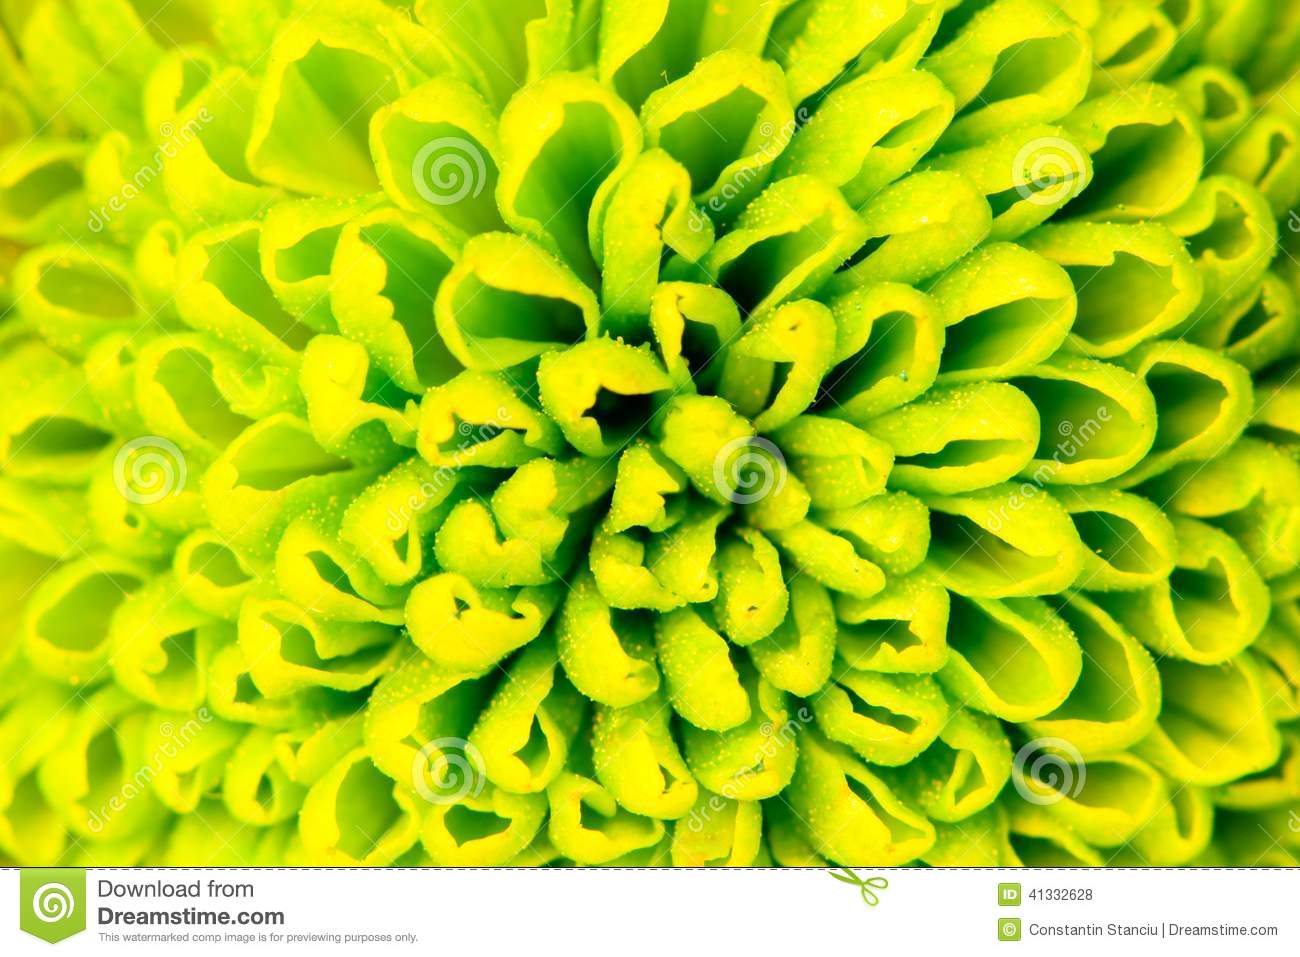 Chrysanthemum green flower closeup, abstract background